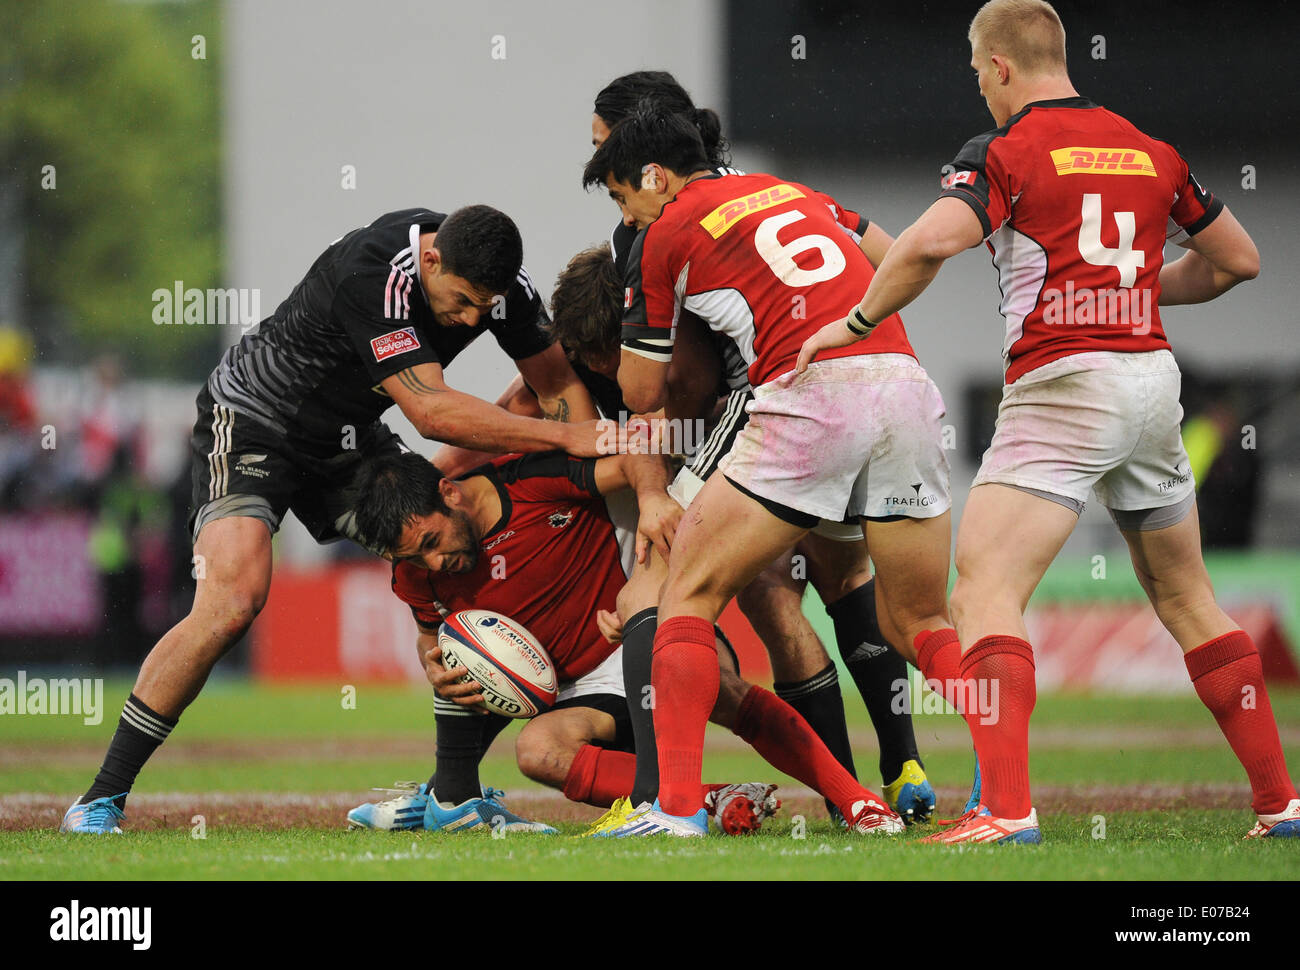 Glasgow, Scotland, UK. 4th May 2014.  Philip Mack of Canada is caught in possession during the Cup final match between New Zealand and Canada at the HSBC IRB Glasgow Sevens rugby tournament being held at the Scotstoun Stadium in Glasgow. Photo by Roger Sedres/ImageSA/Alamy Live News - Stock Image